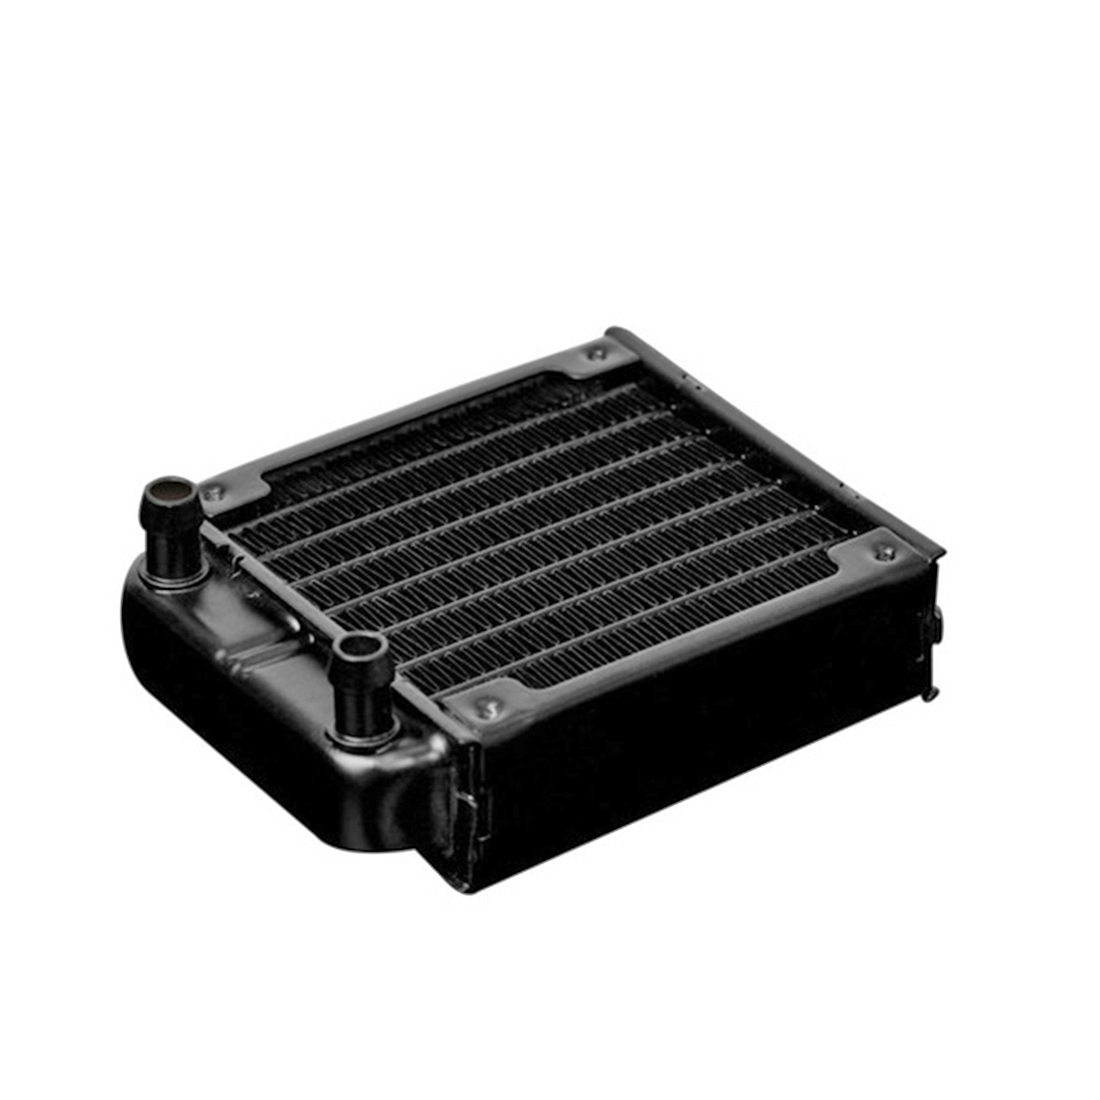 360mm Aluminum Computer Radiator Water Cooler Cooling Heatsink Exchanger Water Cool System For Computer - Black/White